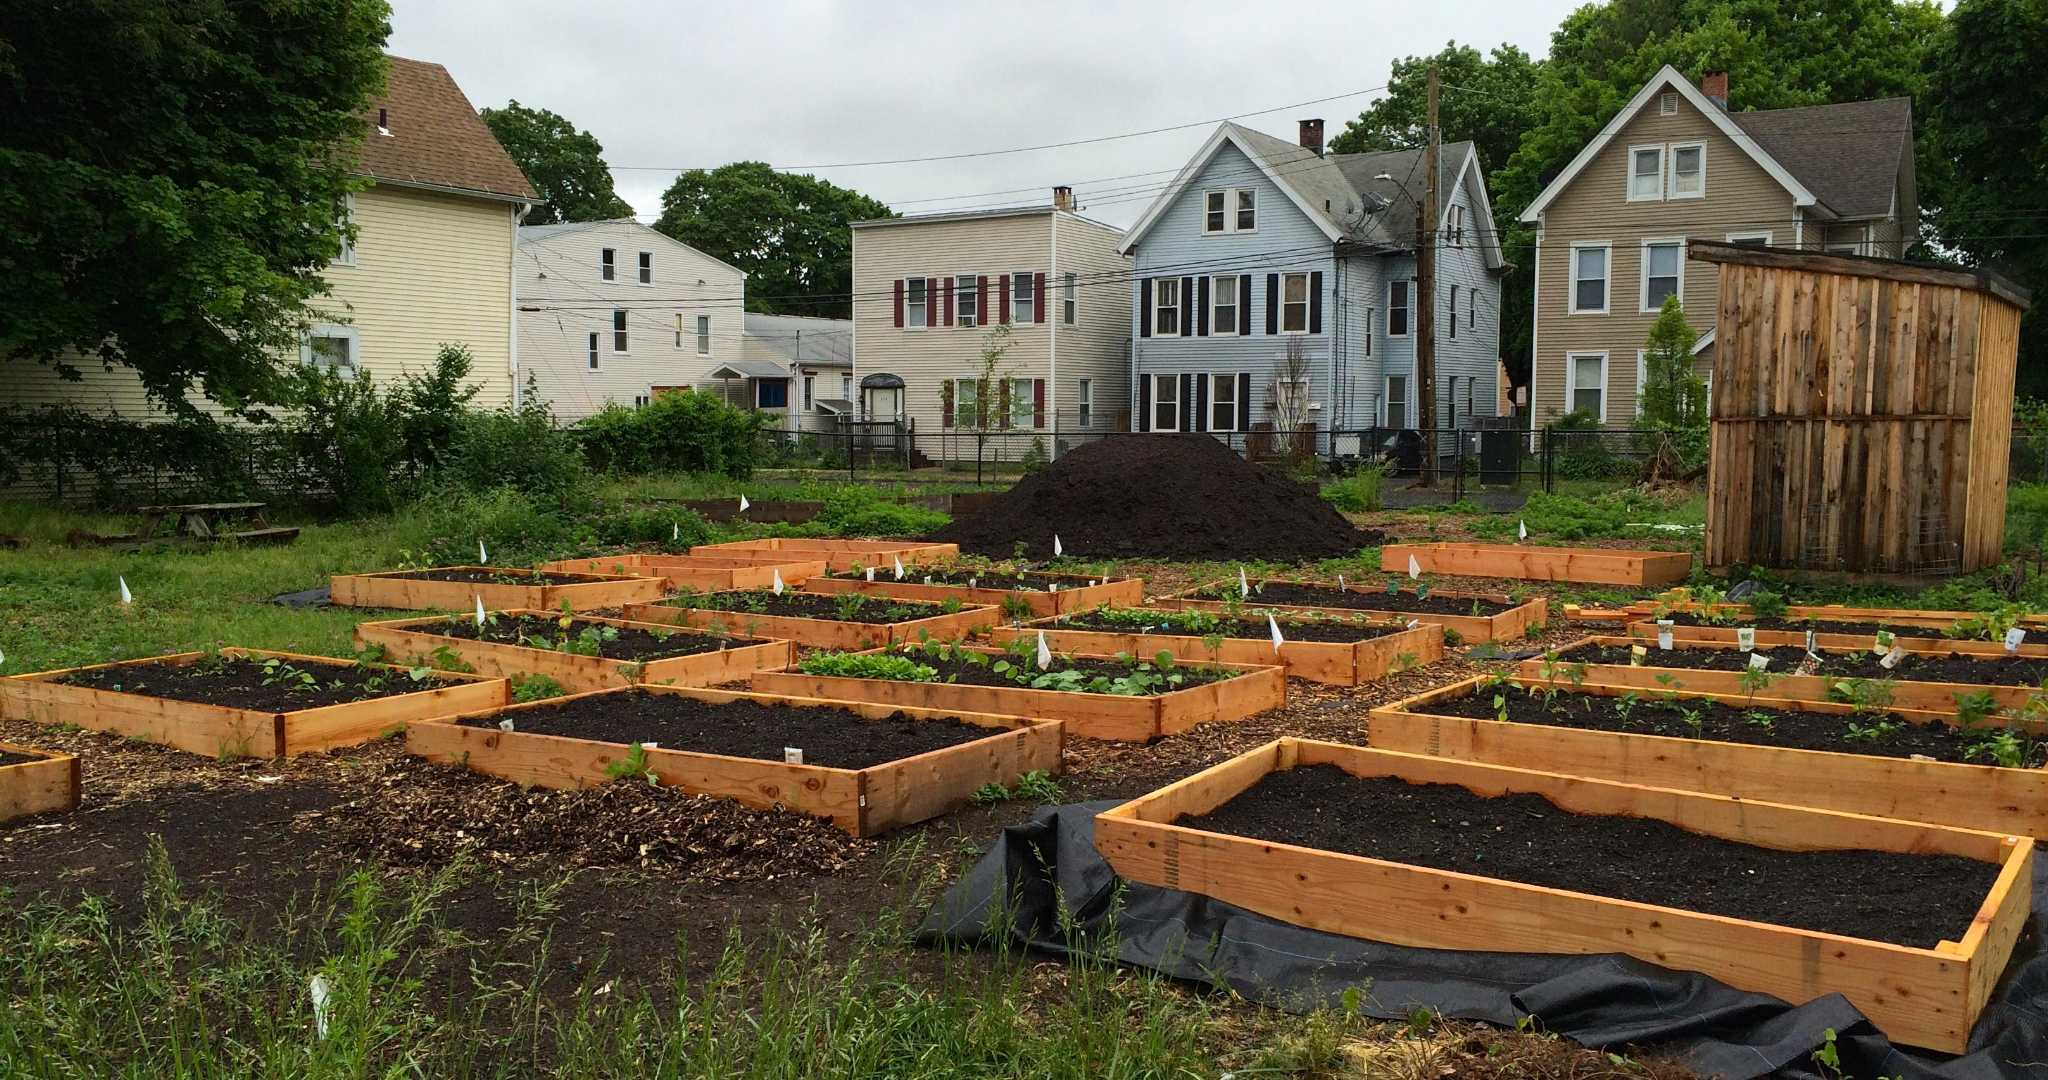 New Haven Farms to expand healthful garden program - New Haven Register